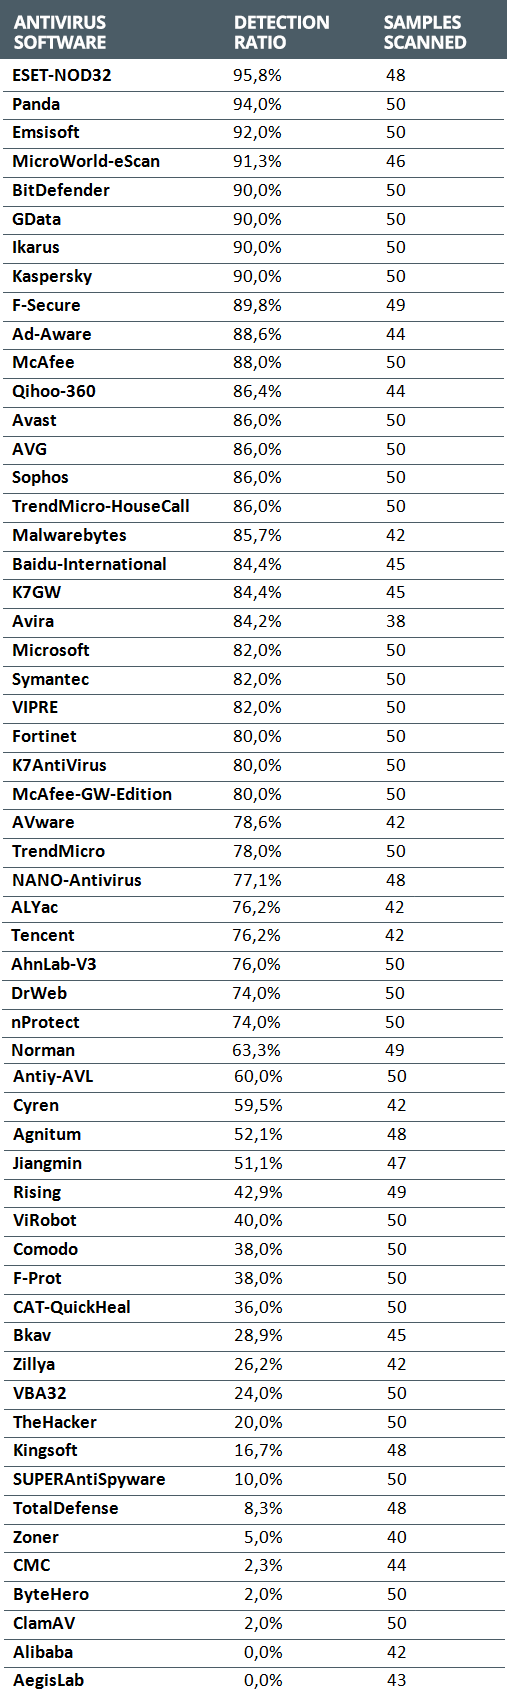 Percentage of detection and the number of samples scanned in different antivirus software.